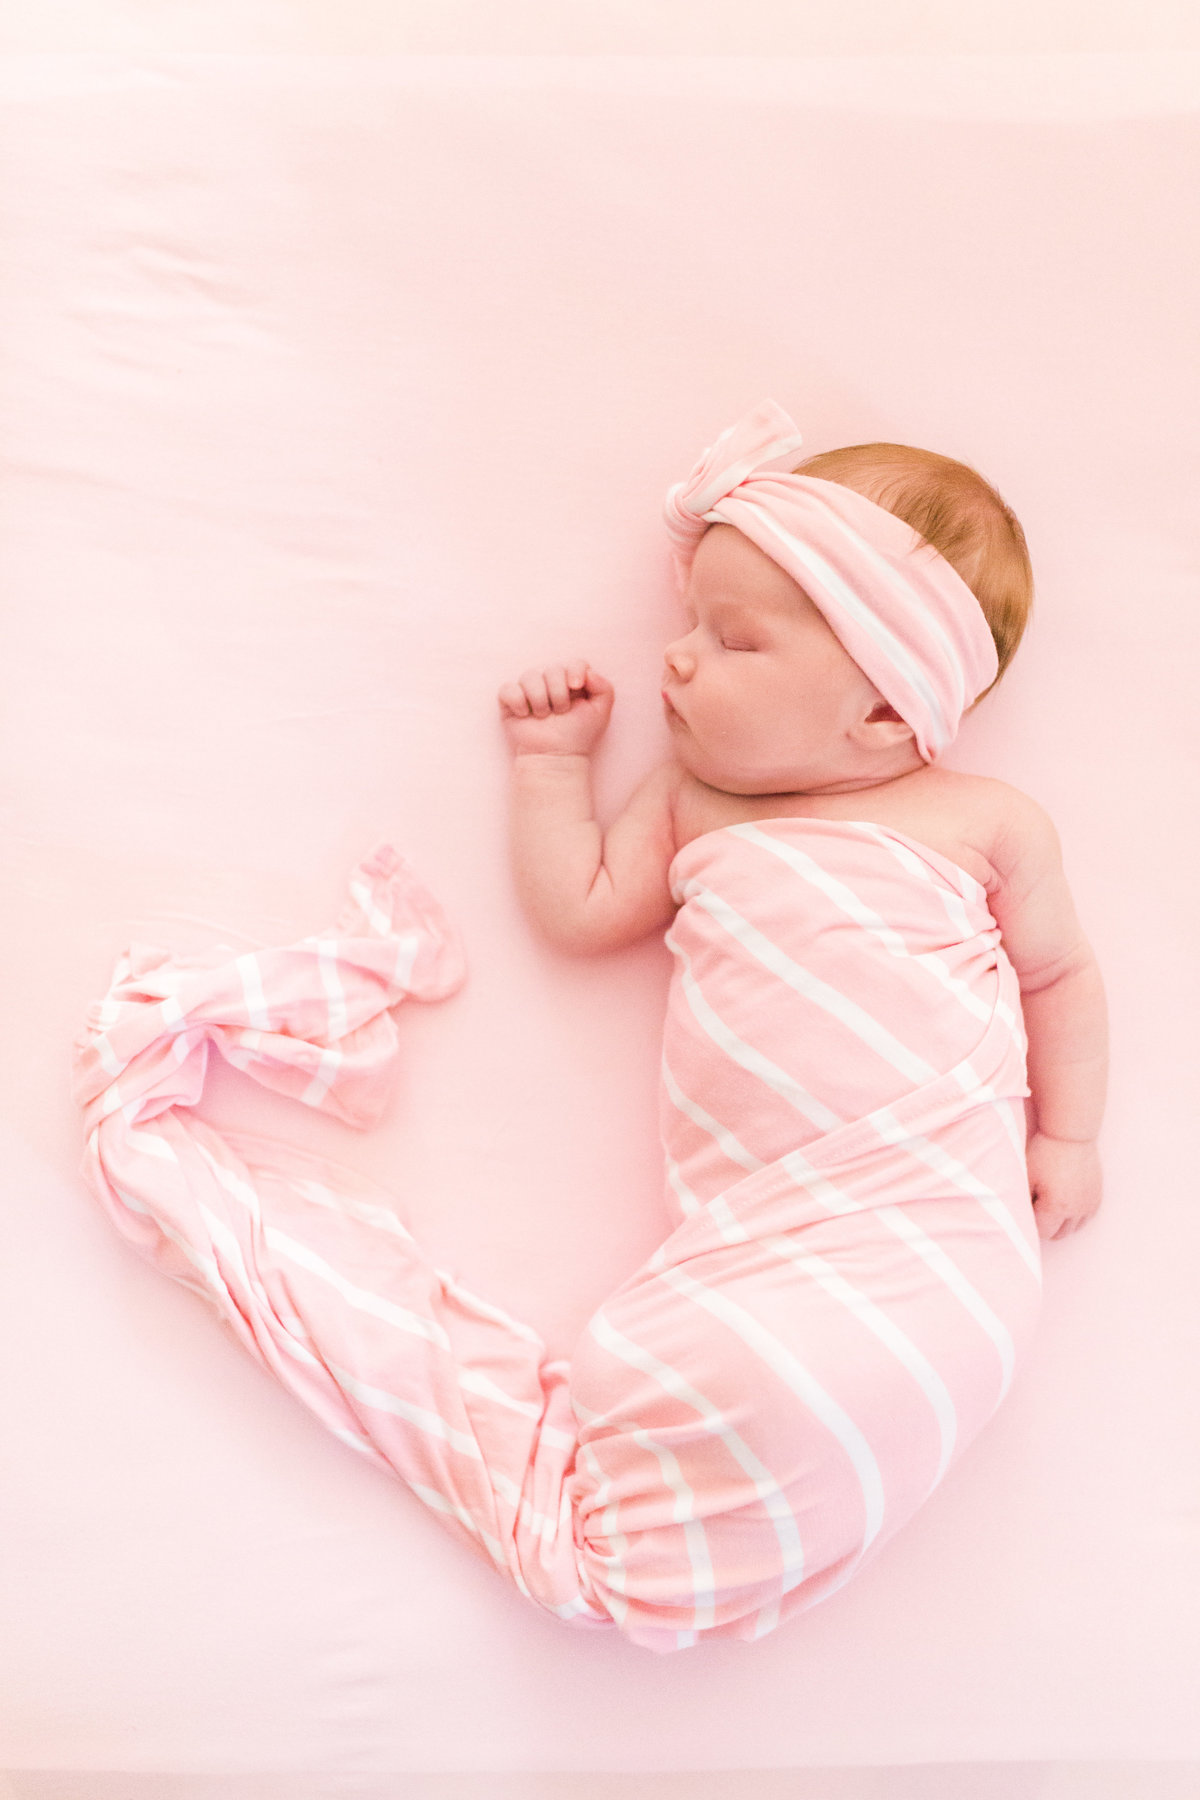 HYP_Kensley_Efird_Newborn_0081